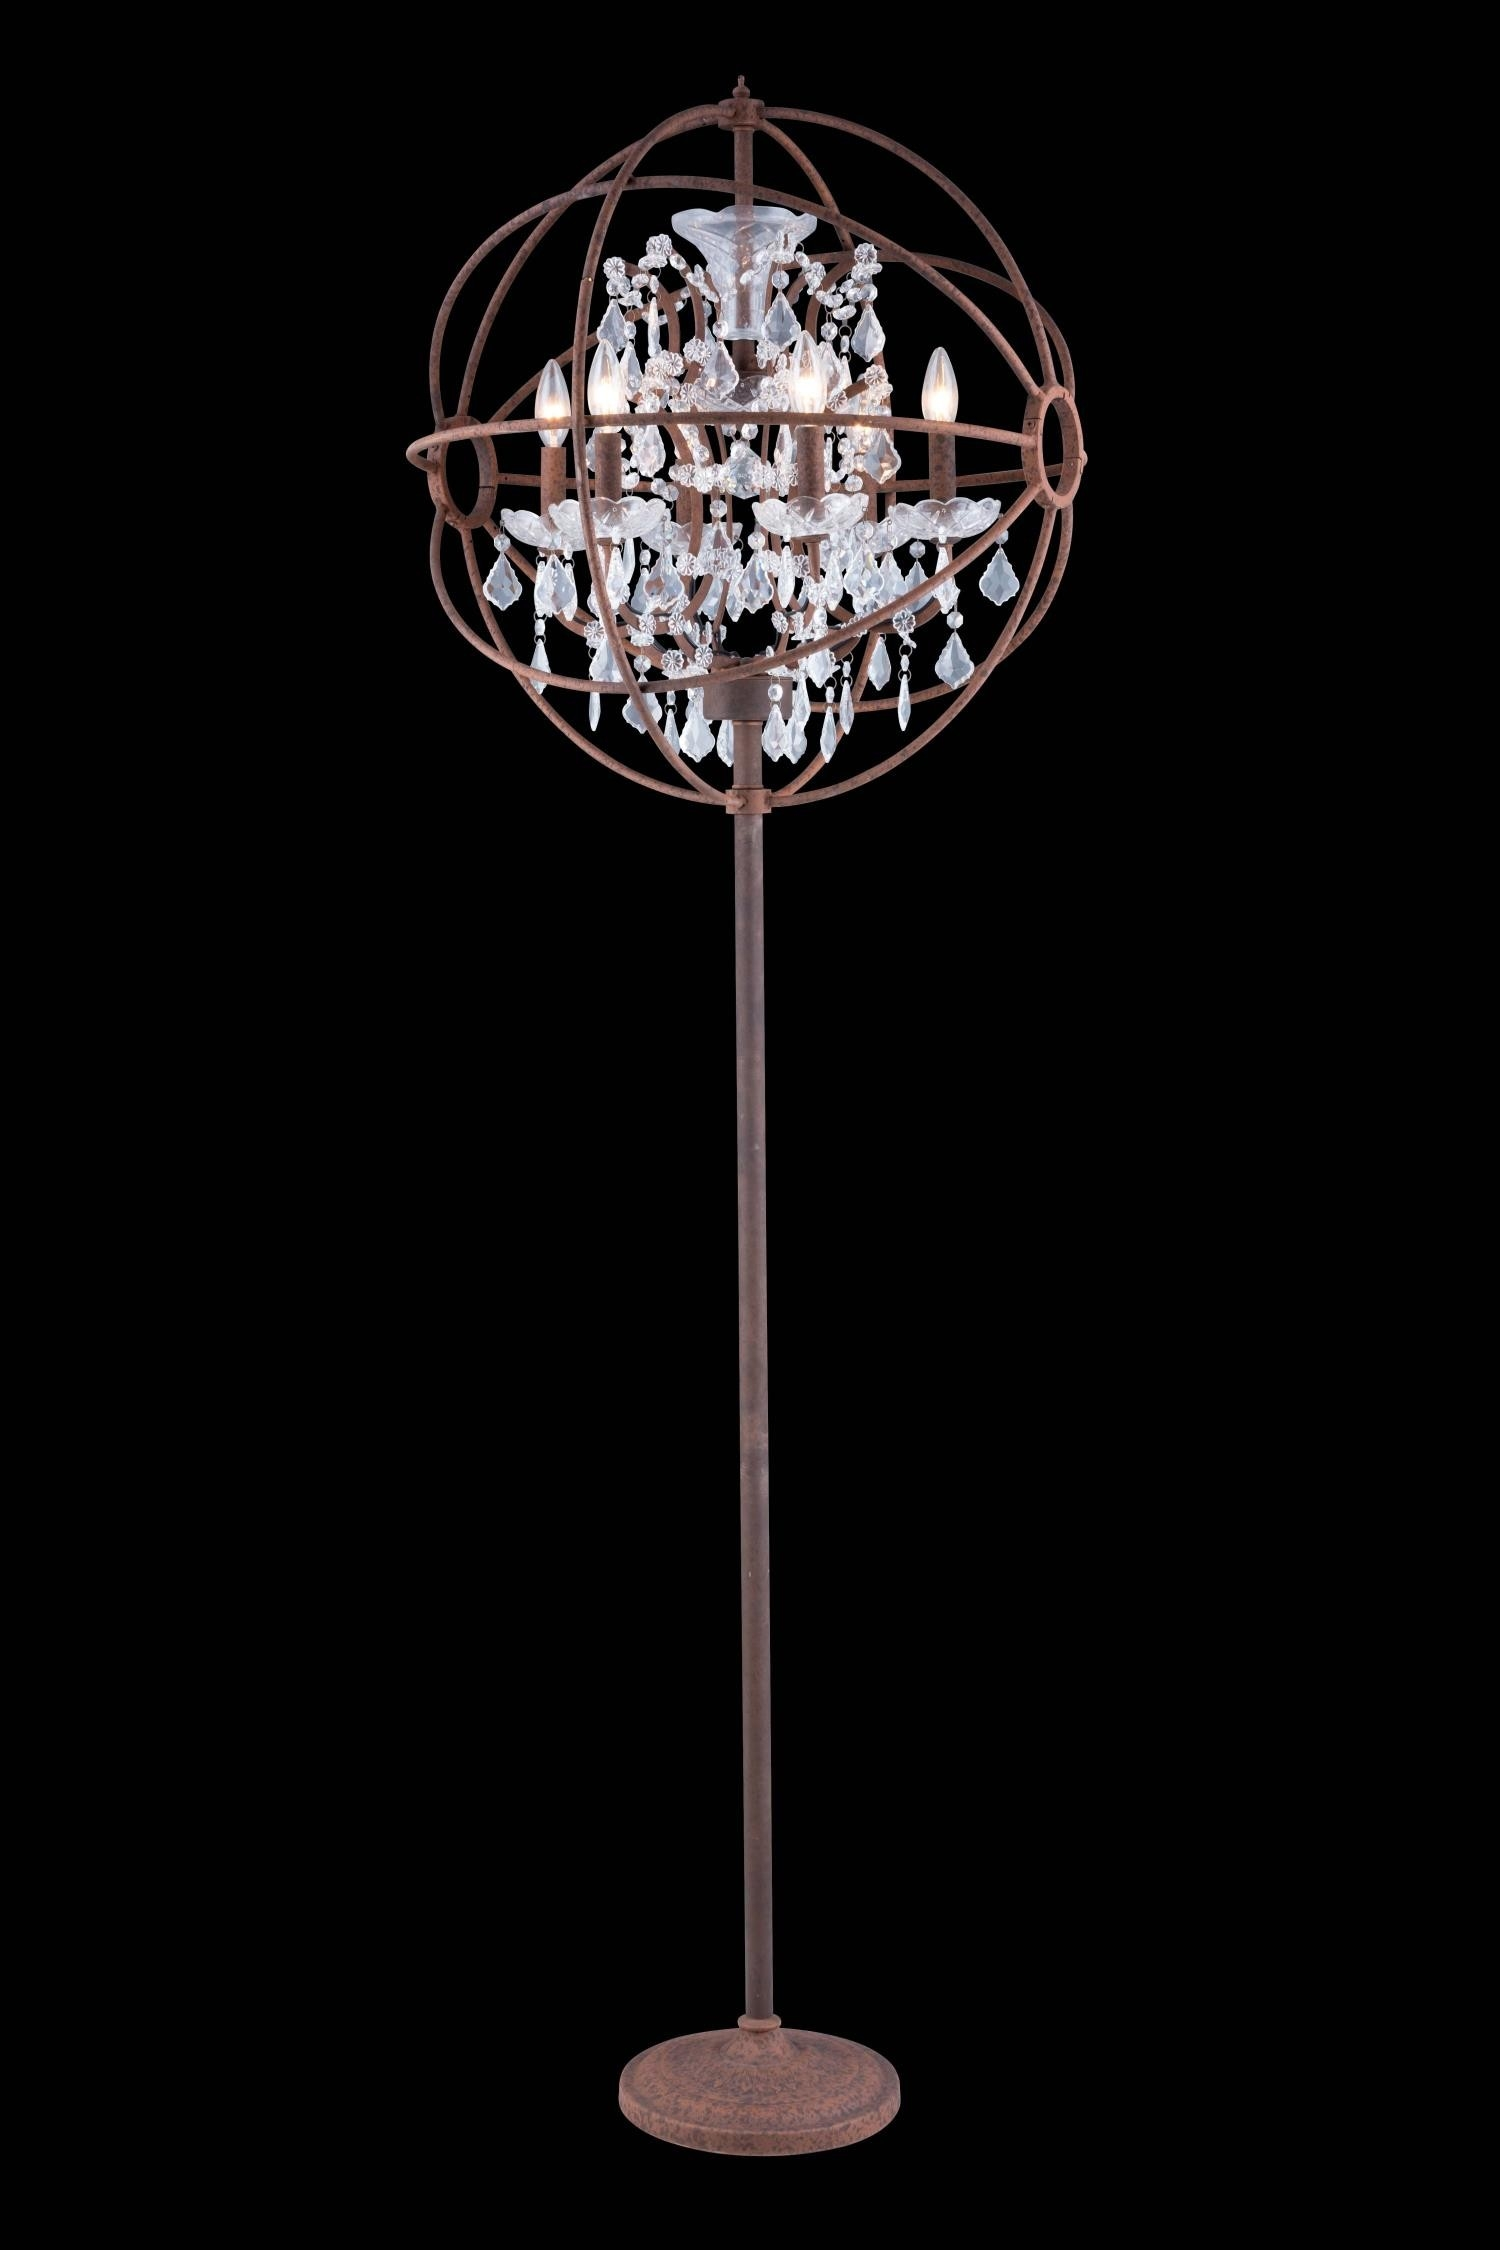 Lights Tall Chandelier Lamp Crystal Floor Lamp Horchow Lamps Sale With Tall Standing Chandelier Lamps (View 9 of 25)